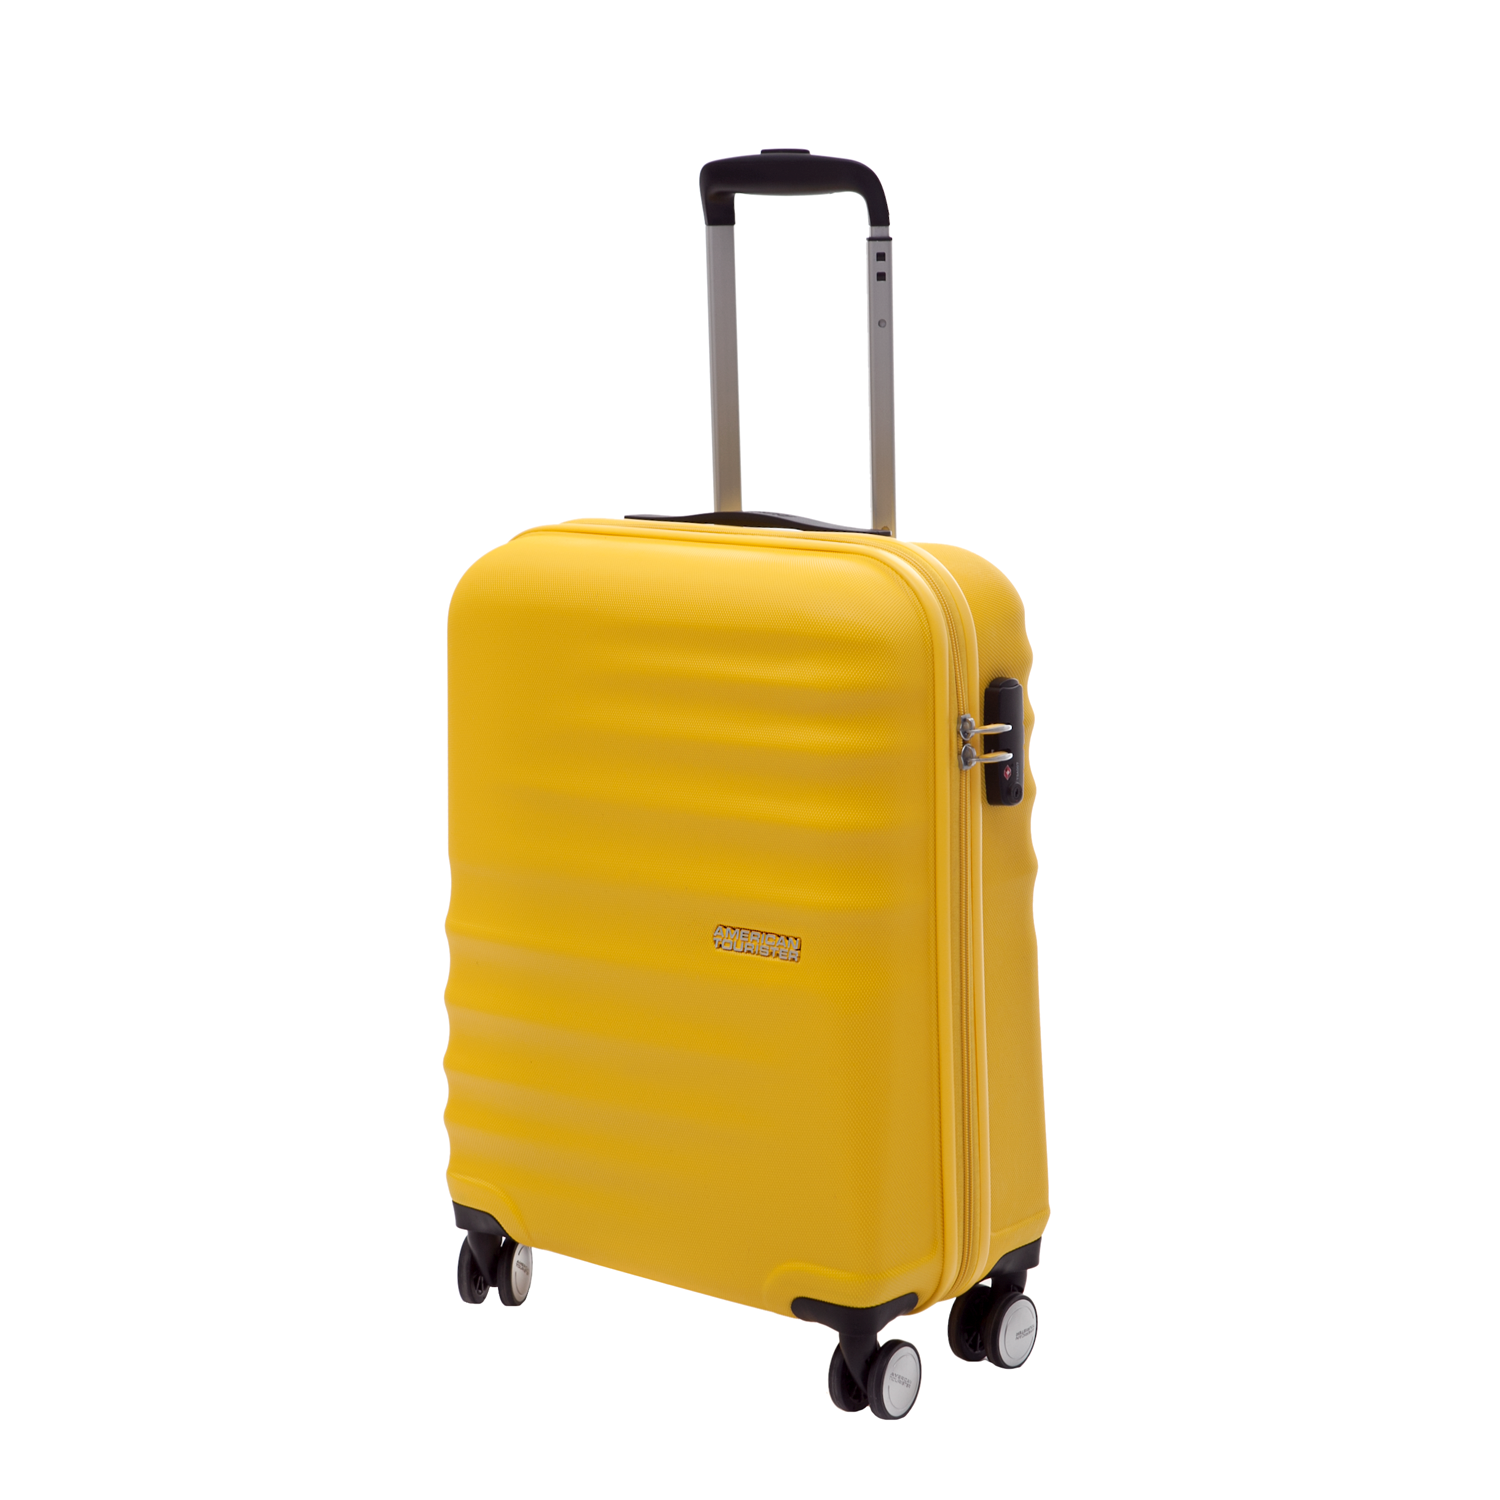 AMERICAN TOURISTER – Βαλίτσα American Tourister WAVEBREAKER SPINNER κίτρινη